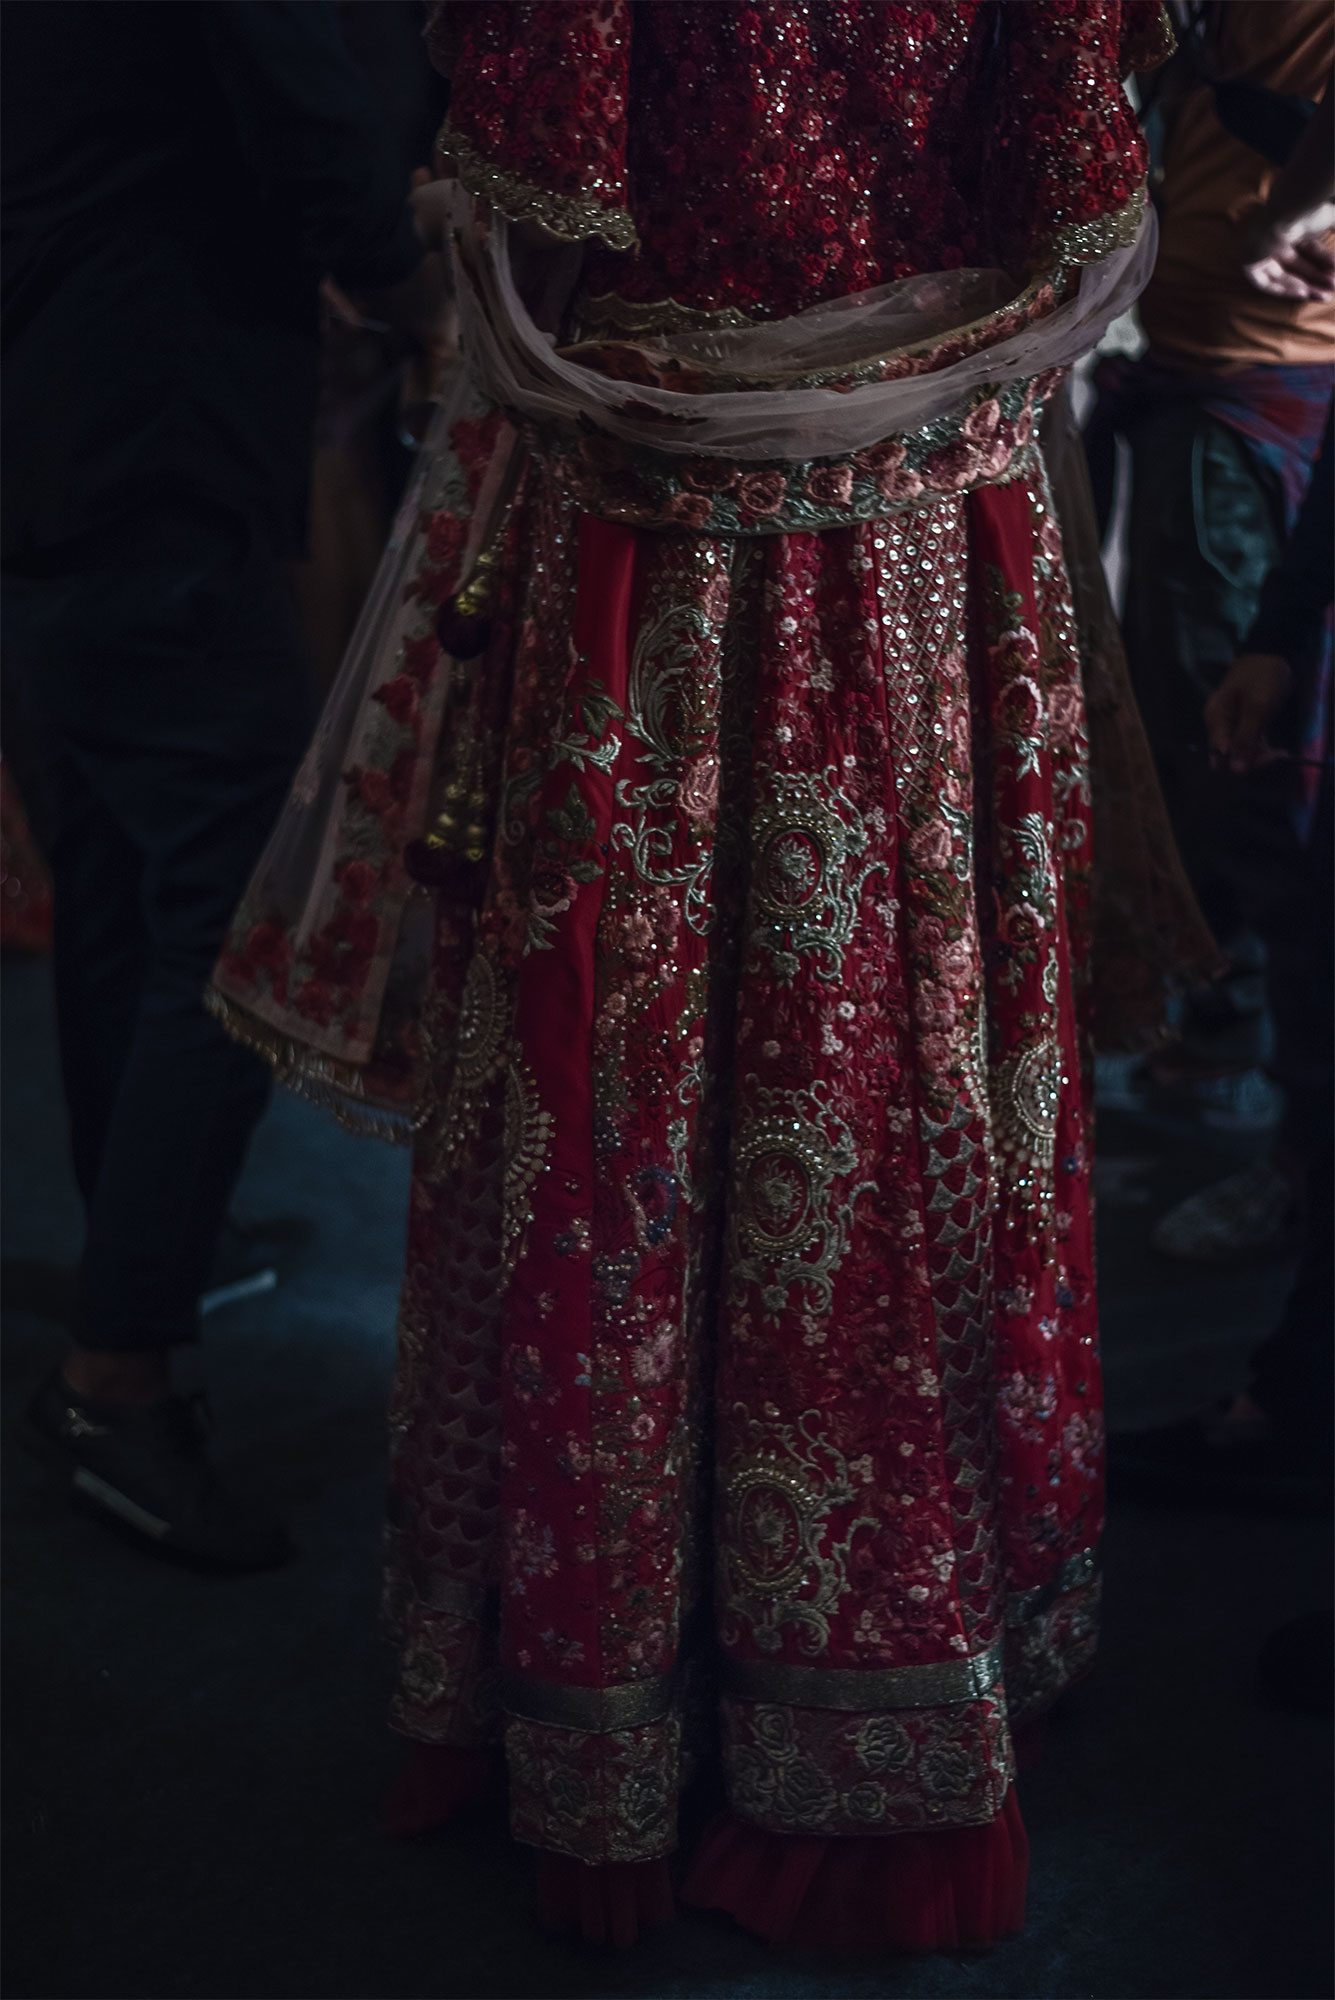 M.A.C. Backstage FDCI India Couture Week 2016 Photo by RAWKY KSH 37